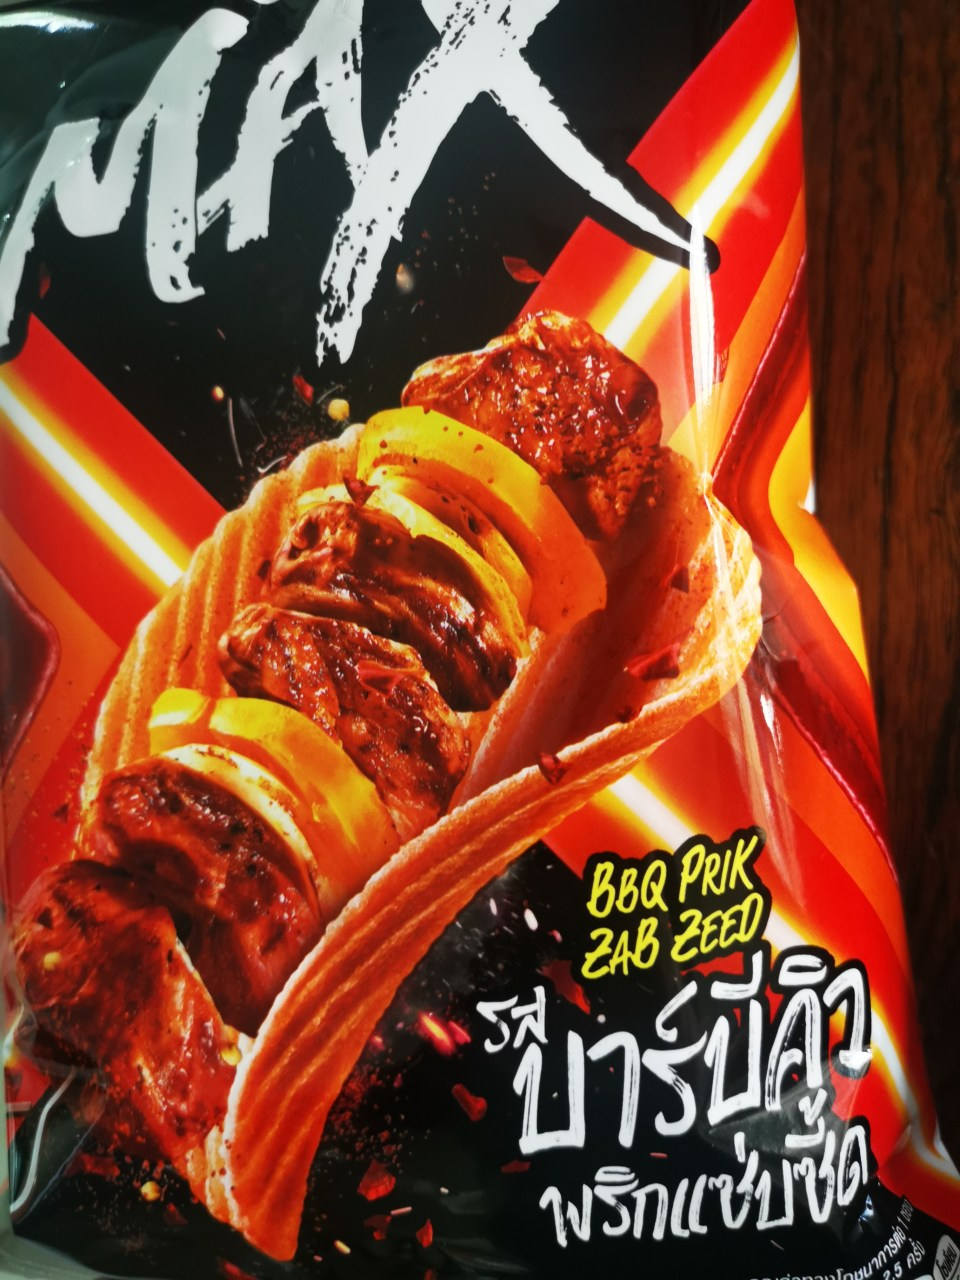 Max Lay's Chips with spicy flavour